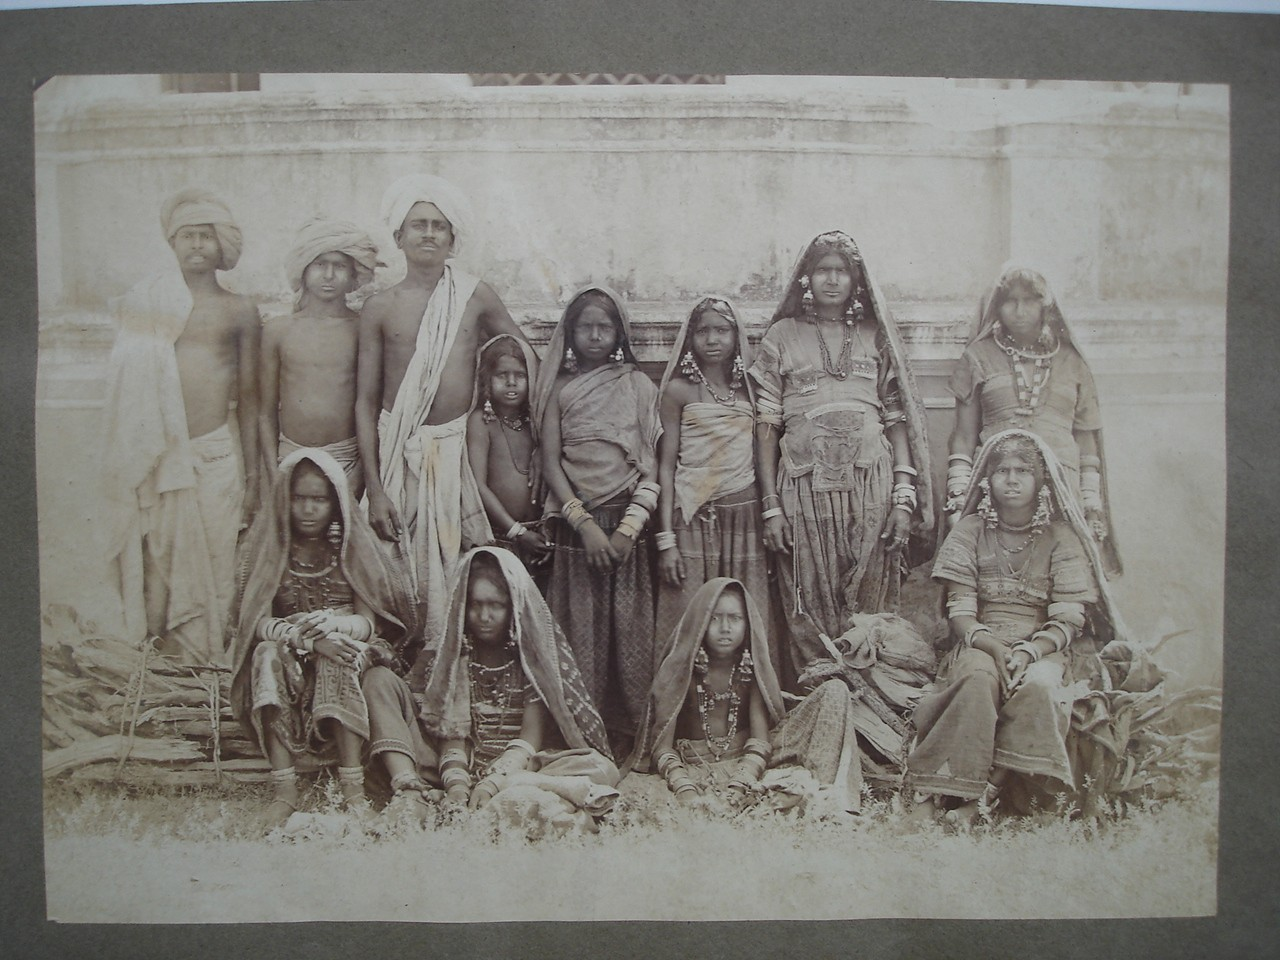 Group Photo of India Men, Women and Children - 1860-70's - Old ...